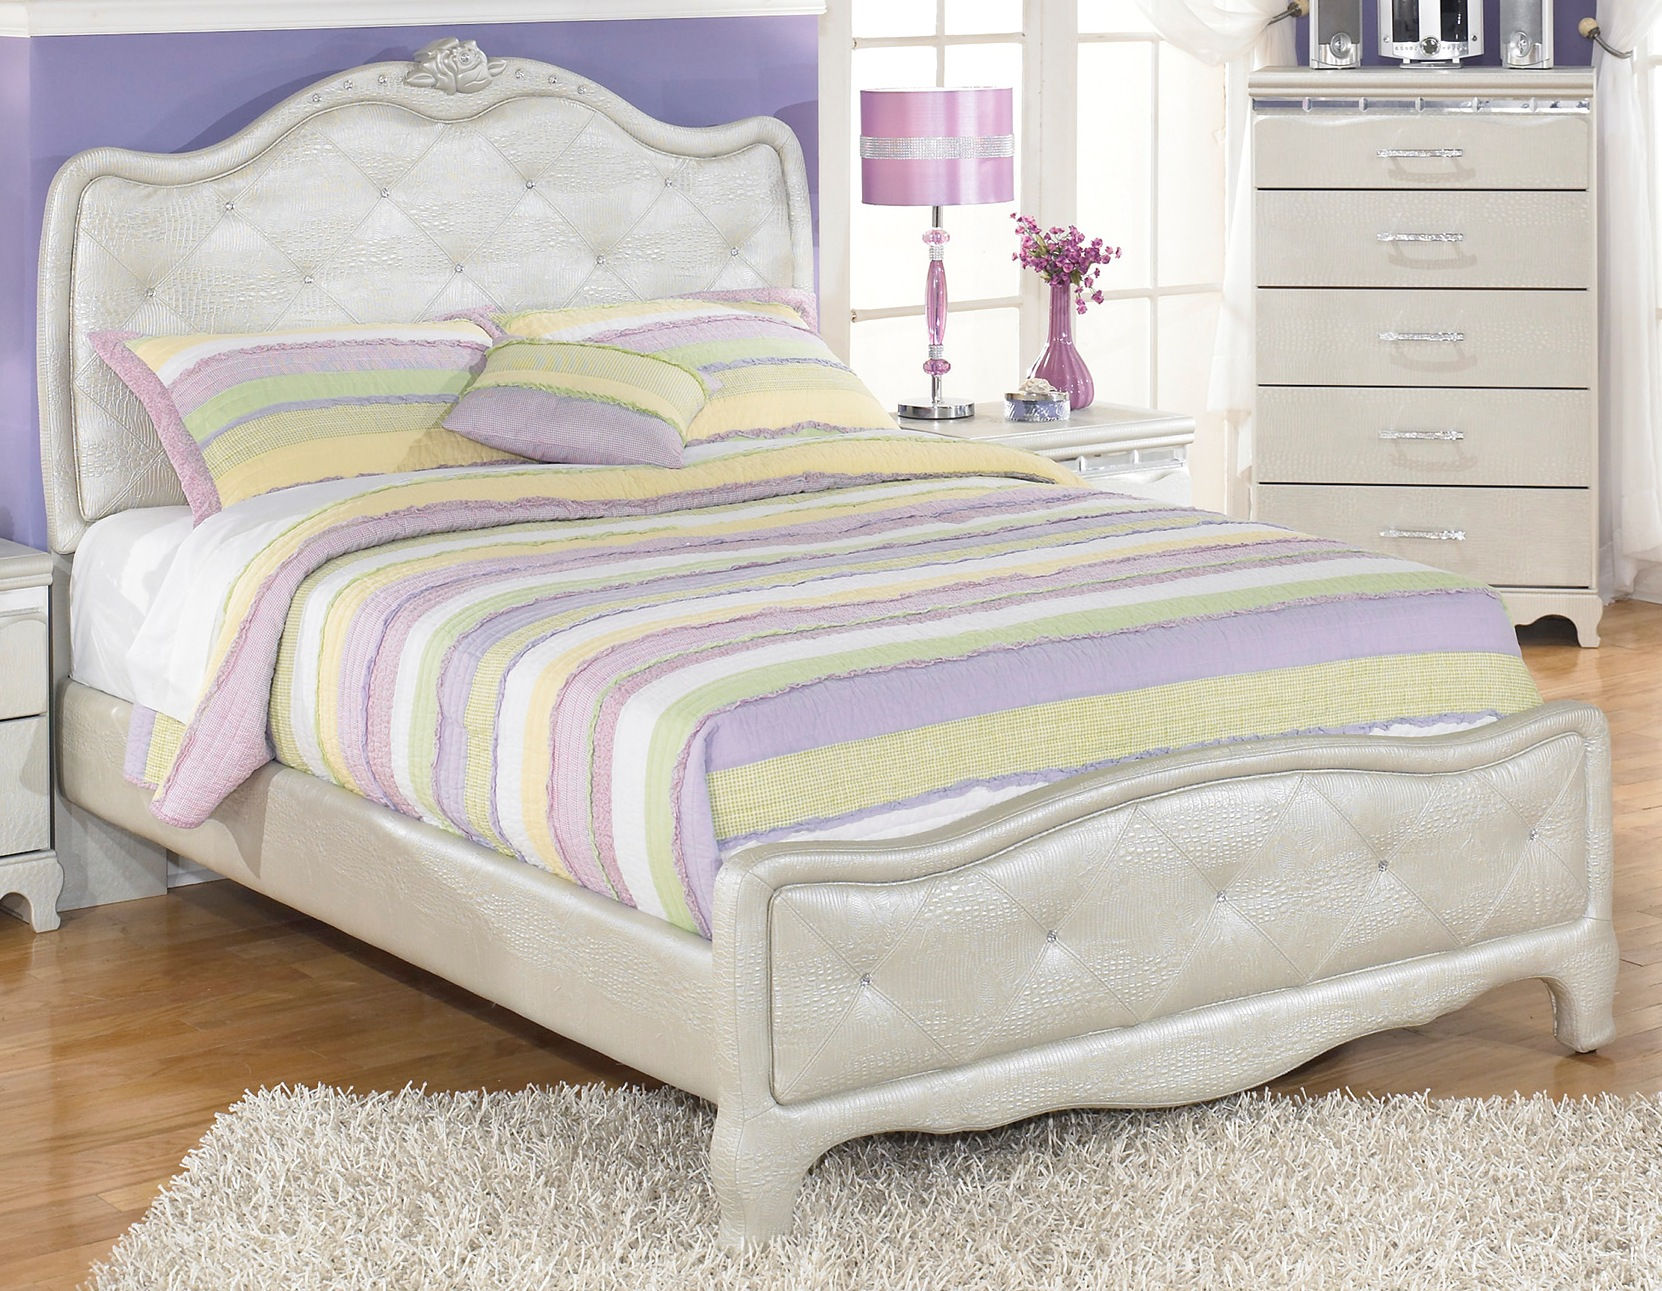 Ashley Furniture Zarollina Silver Full Bed Click To Enlarge ...